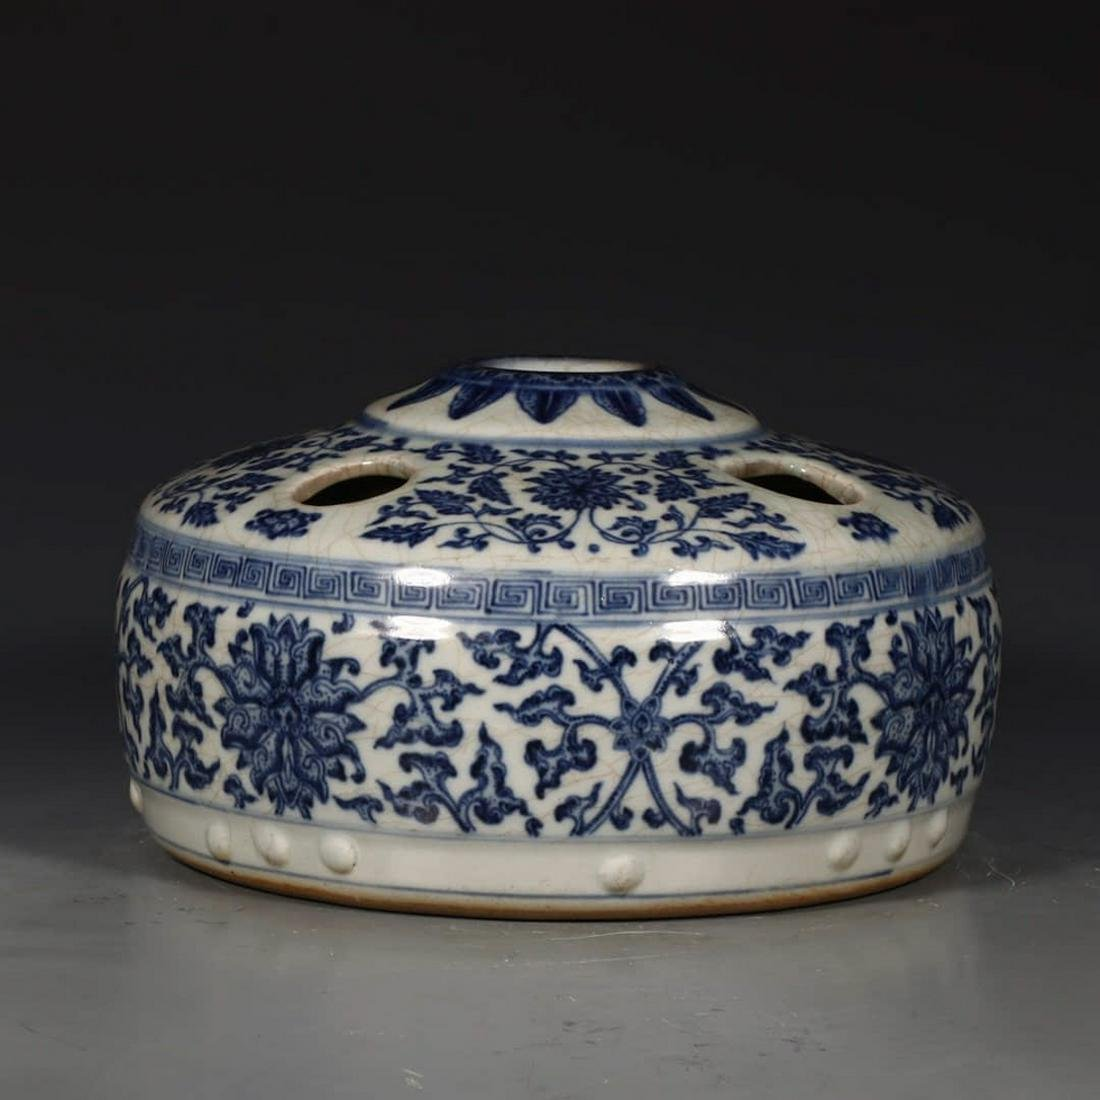 A Chinese Blue and White Floral Porcelain Flower